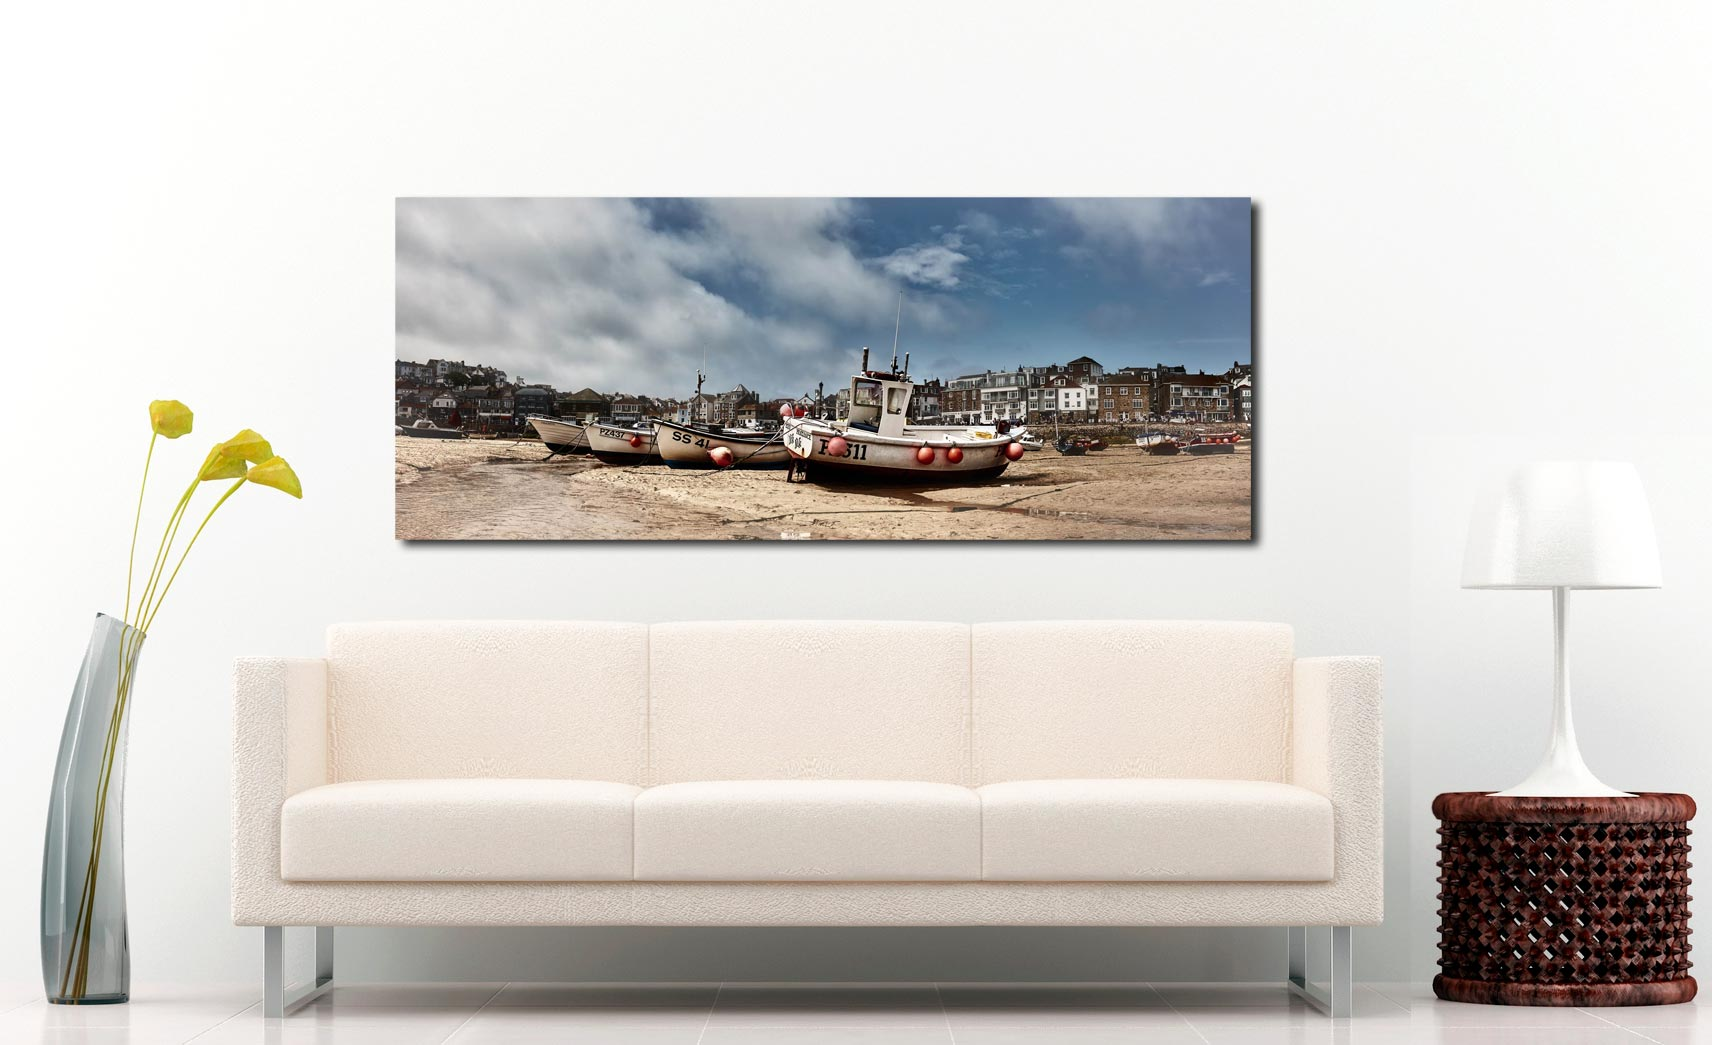 St Ives fishing boats waiting for the returning tide - Print Aluminium Backing With Acrylic Glazing on Wall